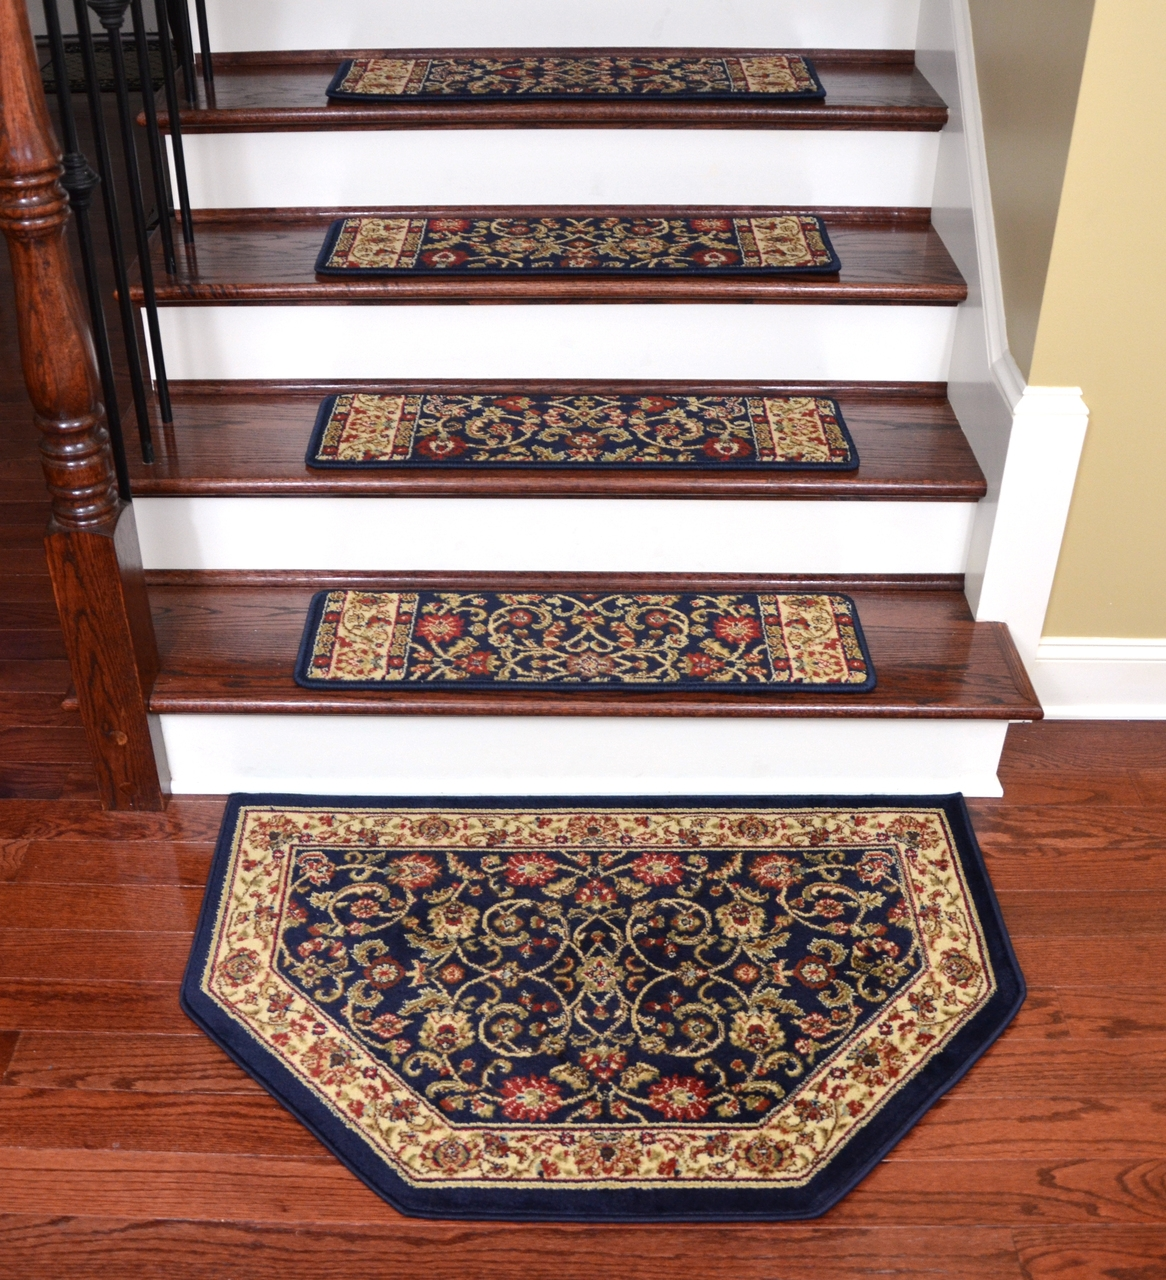 Flooring Pretty Stair Treads Carpet For Stair Decoration Idea Regarding Premium Carpet Stair Treads (Image 11 of 15)